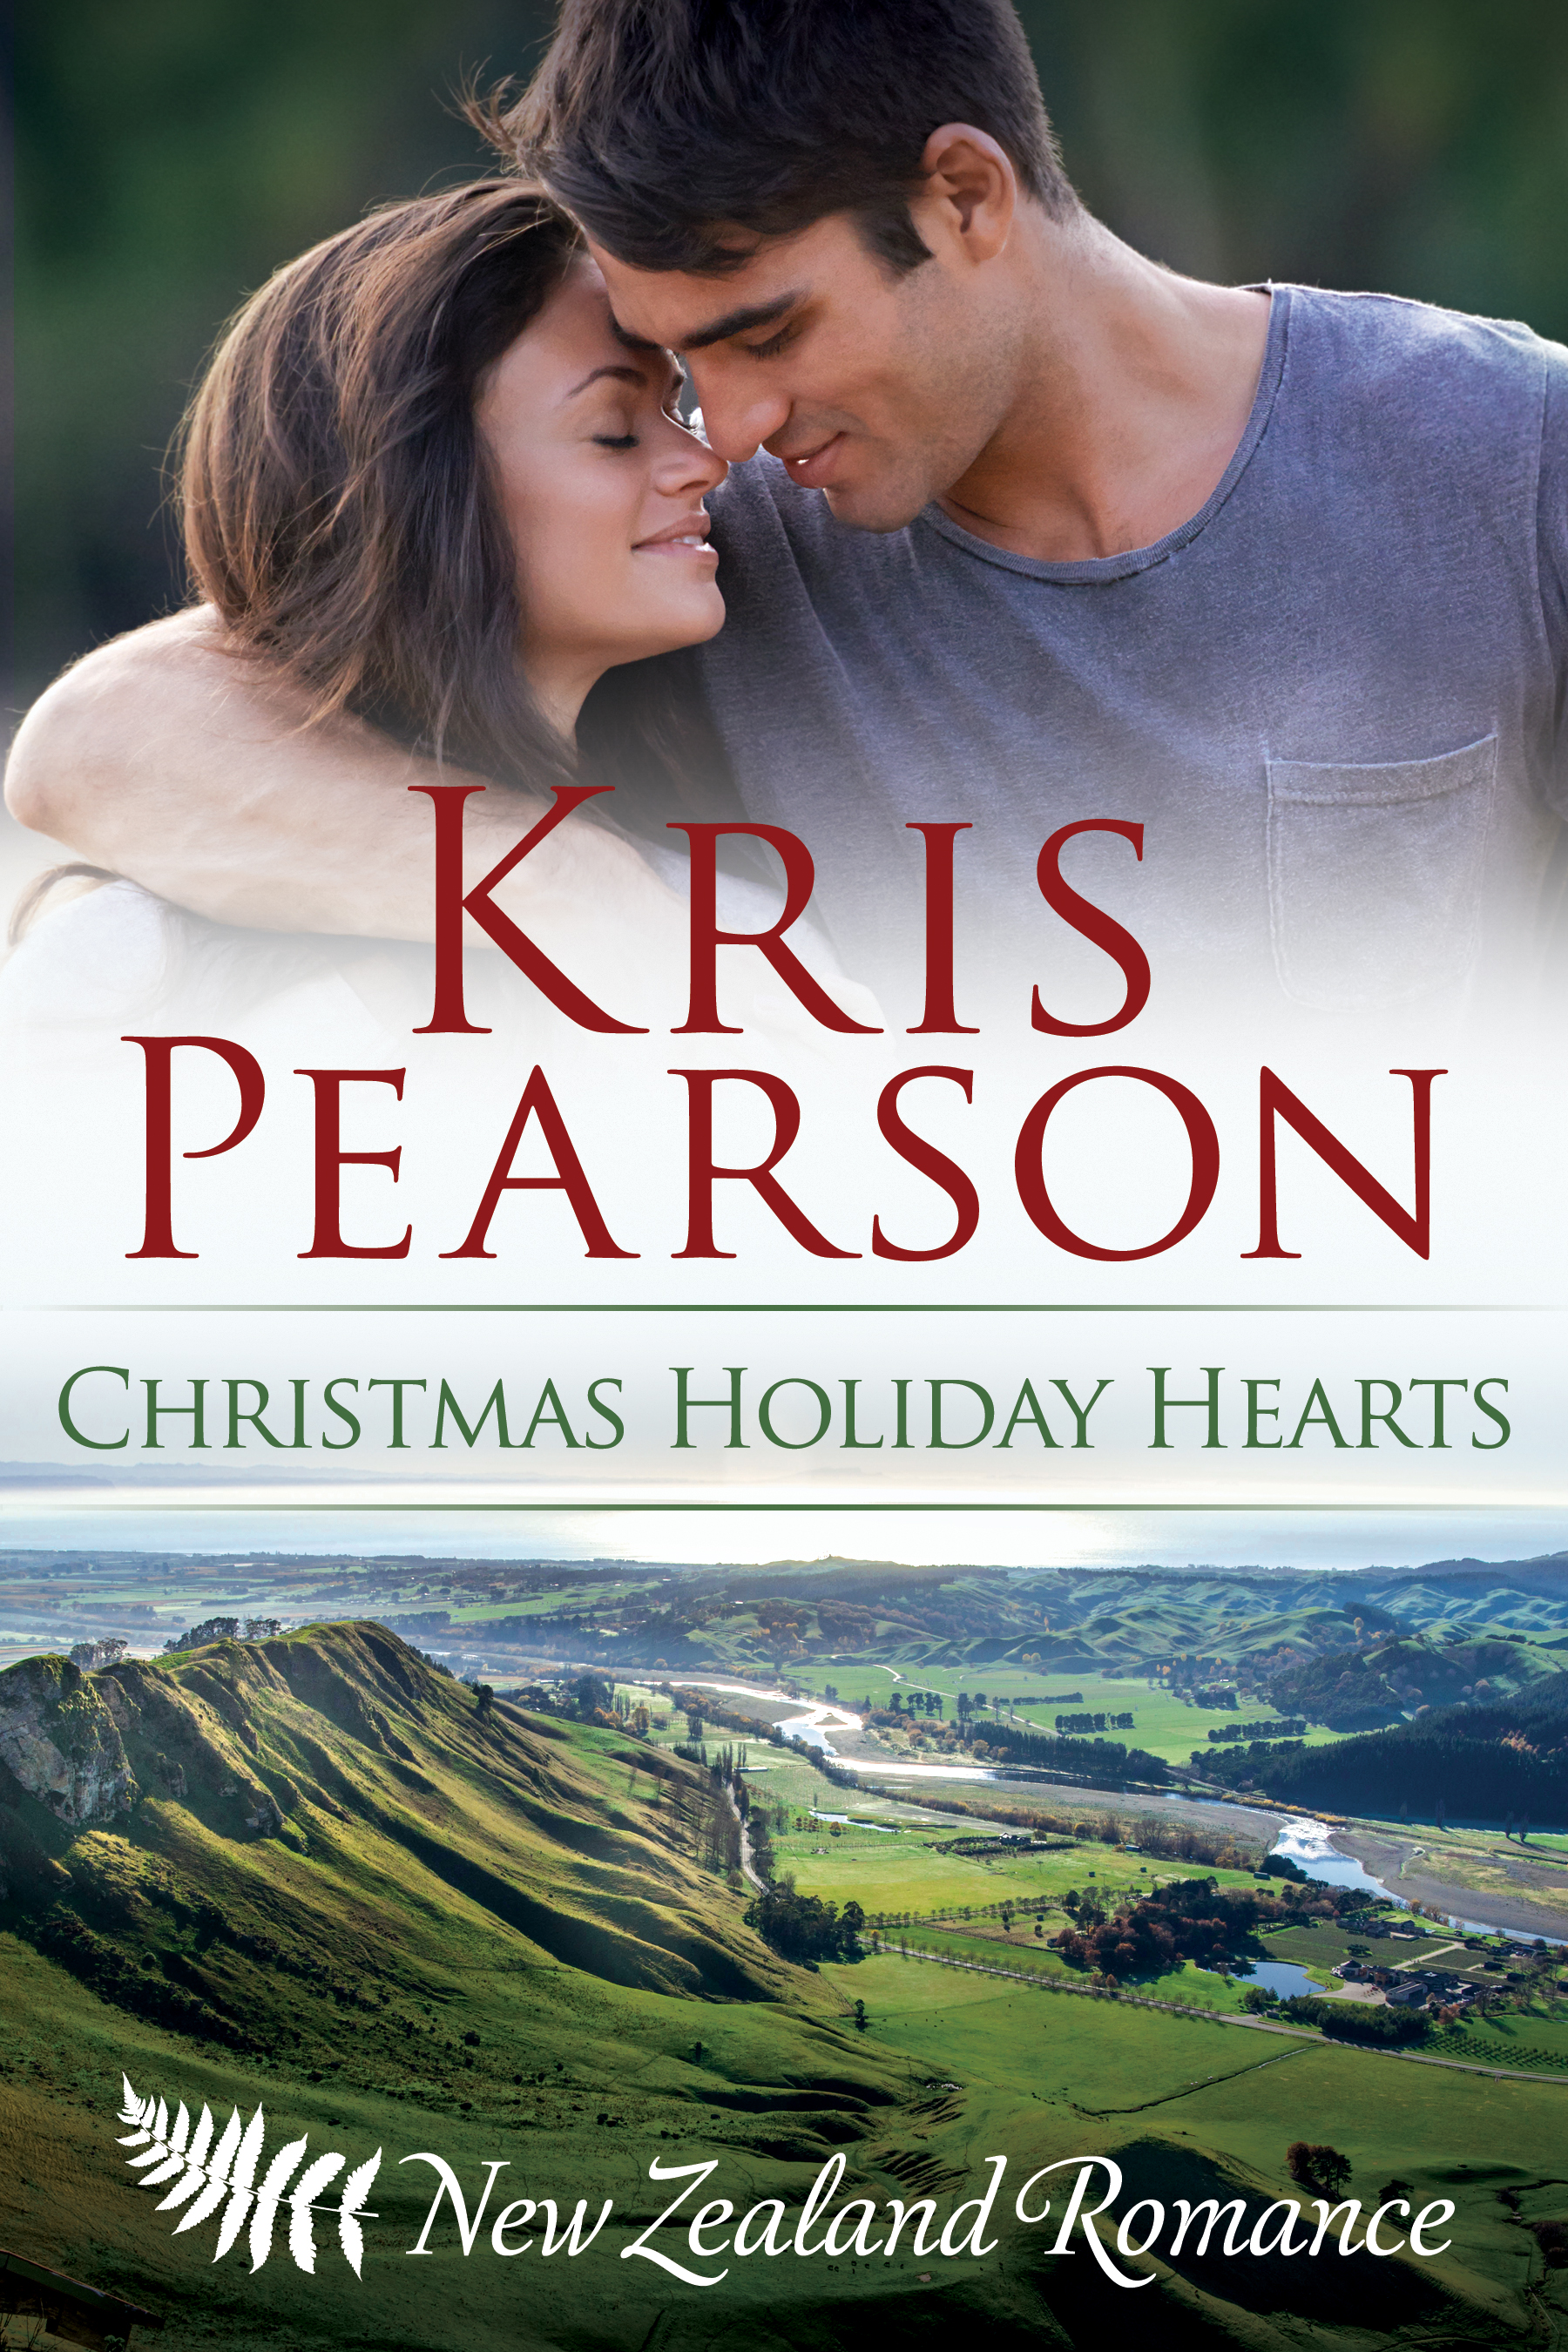 Christmas Holiday Hearts, an Ebook by Kris Pearson